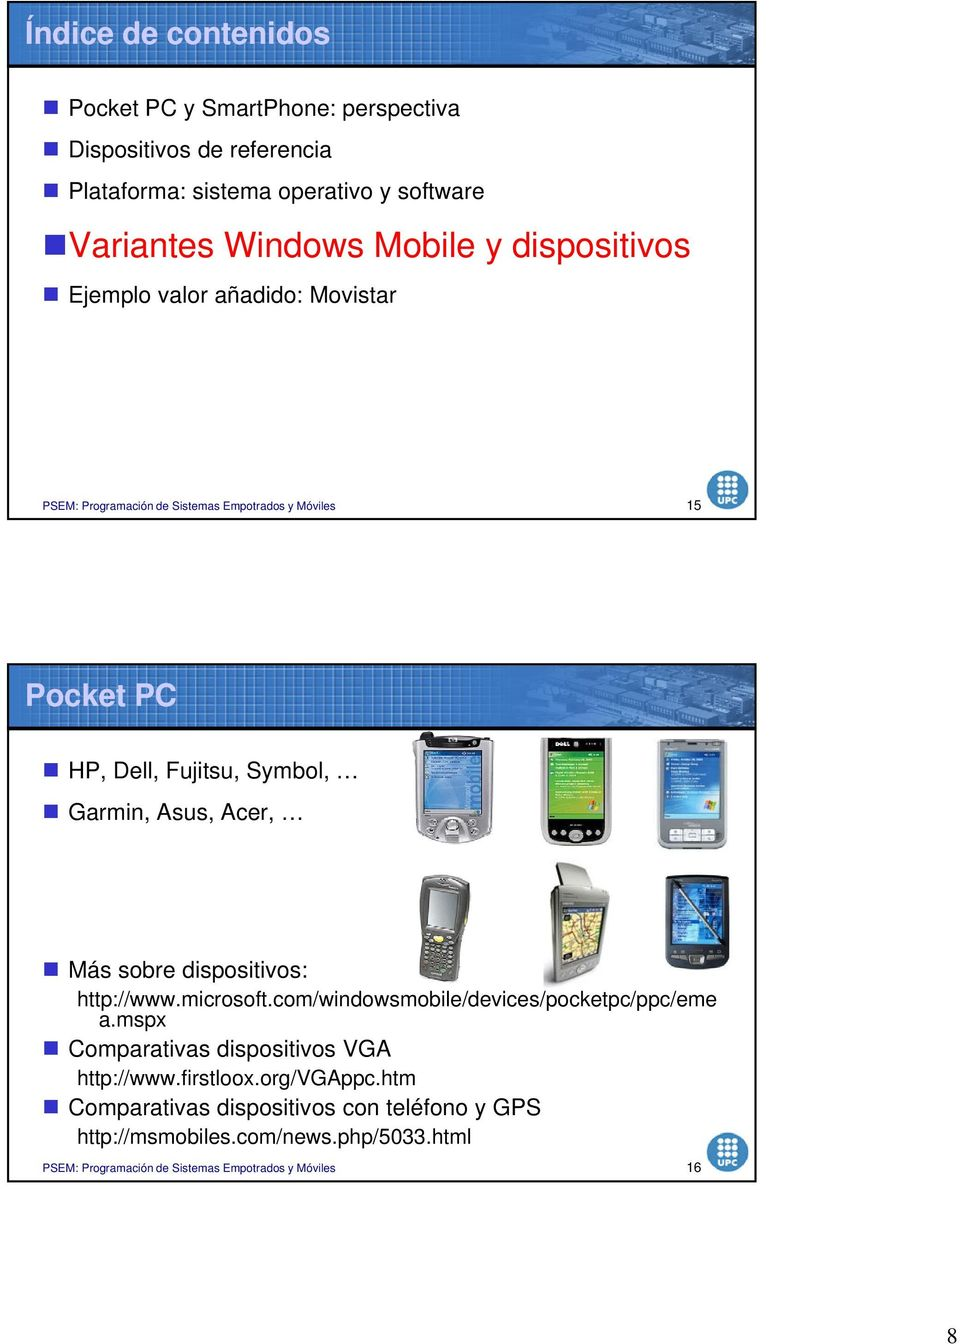 Acer, Más sobre dispositivos: http://www.microsoft.com/windowsmobile/devices/pocketpc/ppc/eme p p pp a.